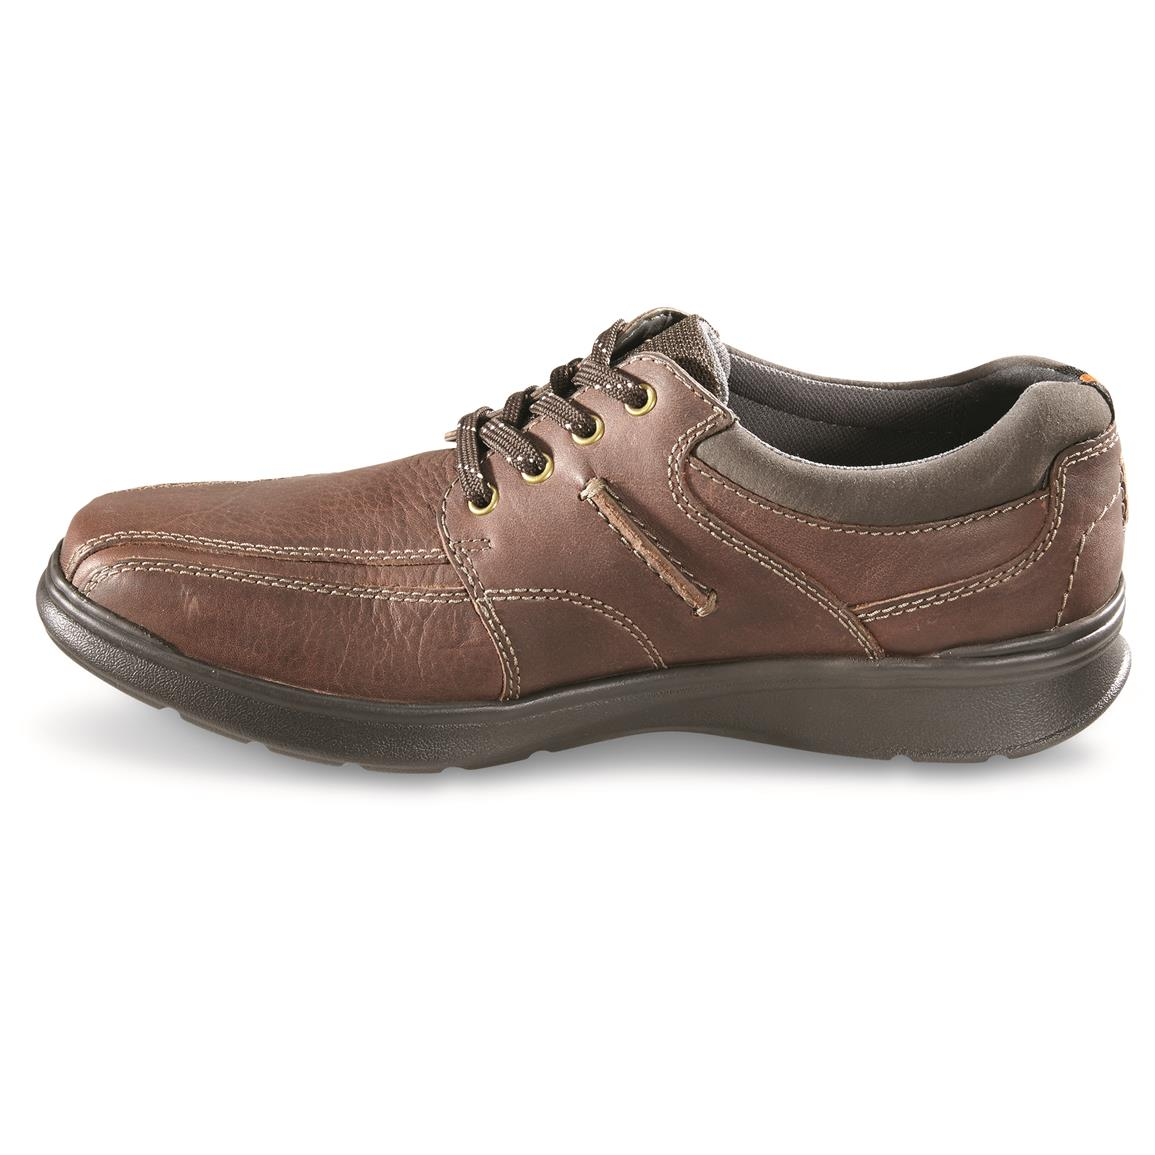 Clarks Mens Walking Shoes